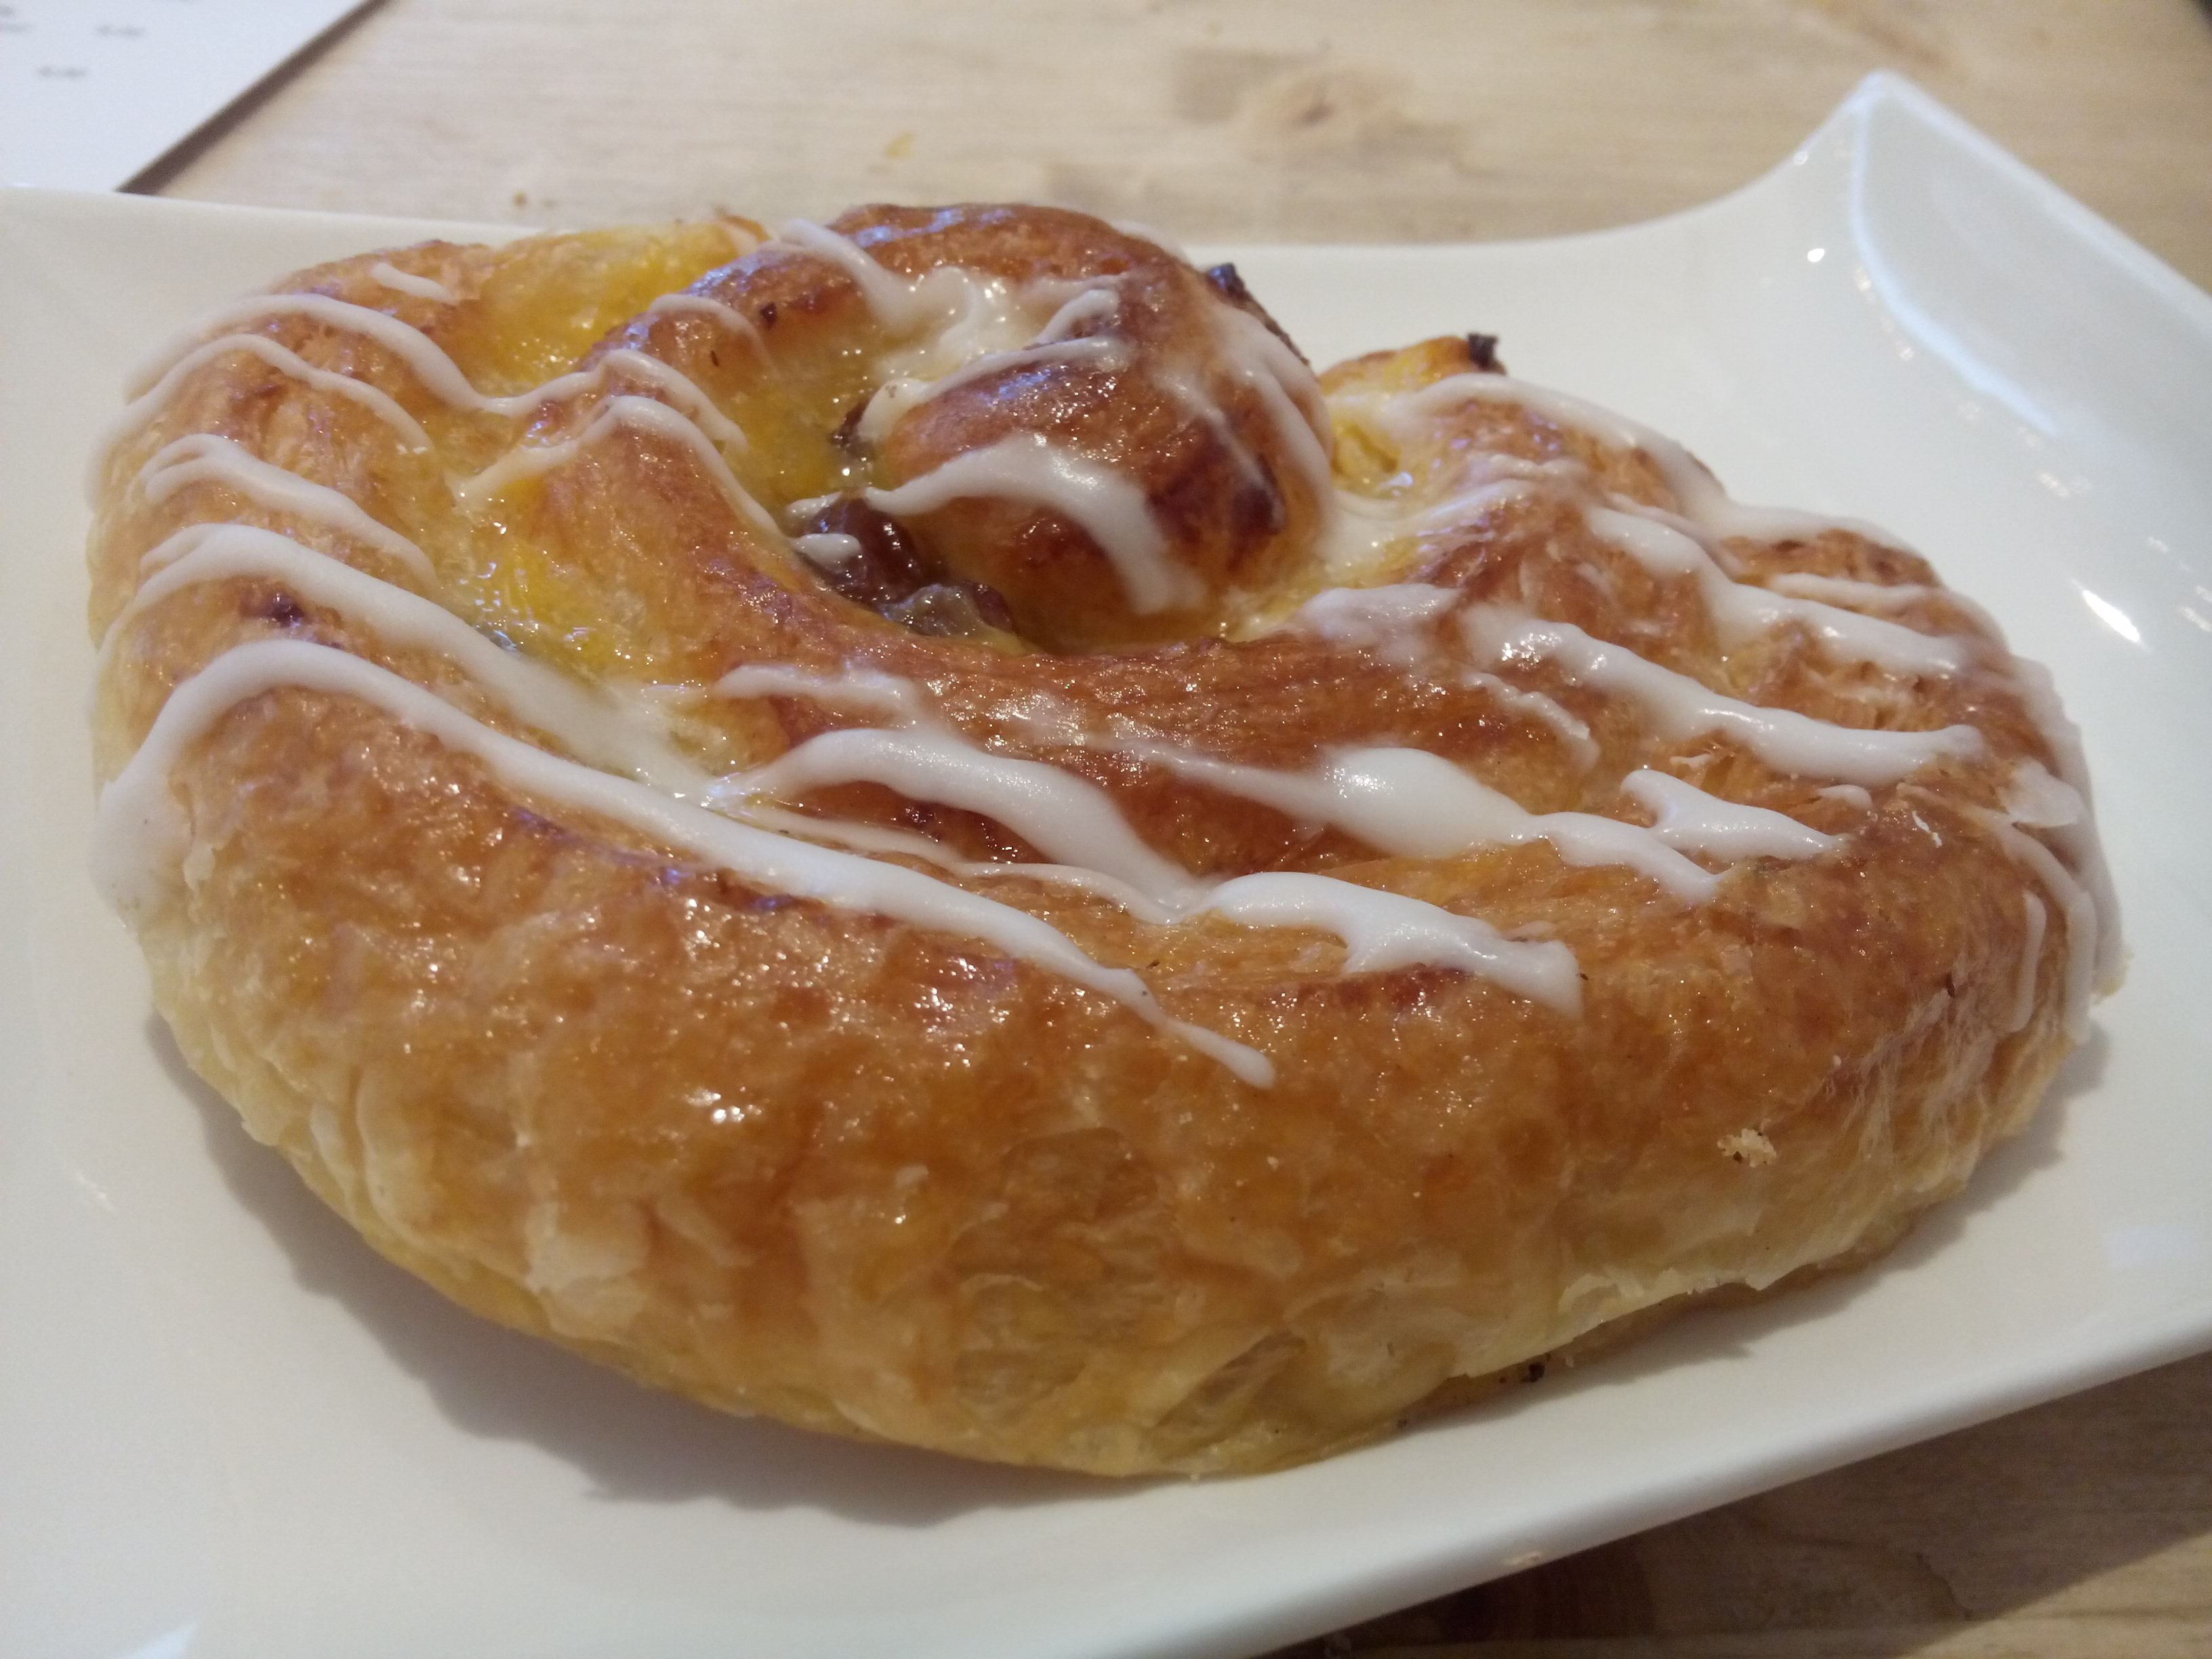 A danish pastry on a plate